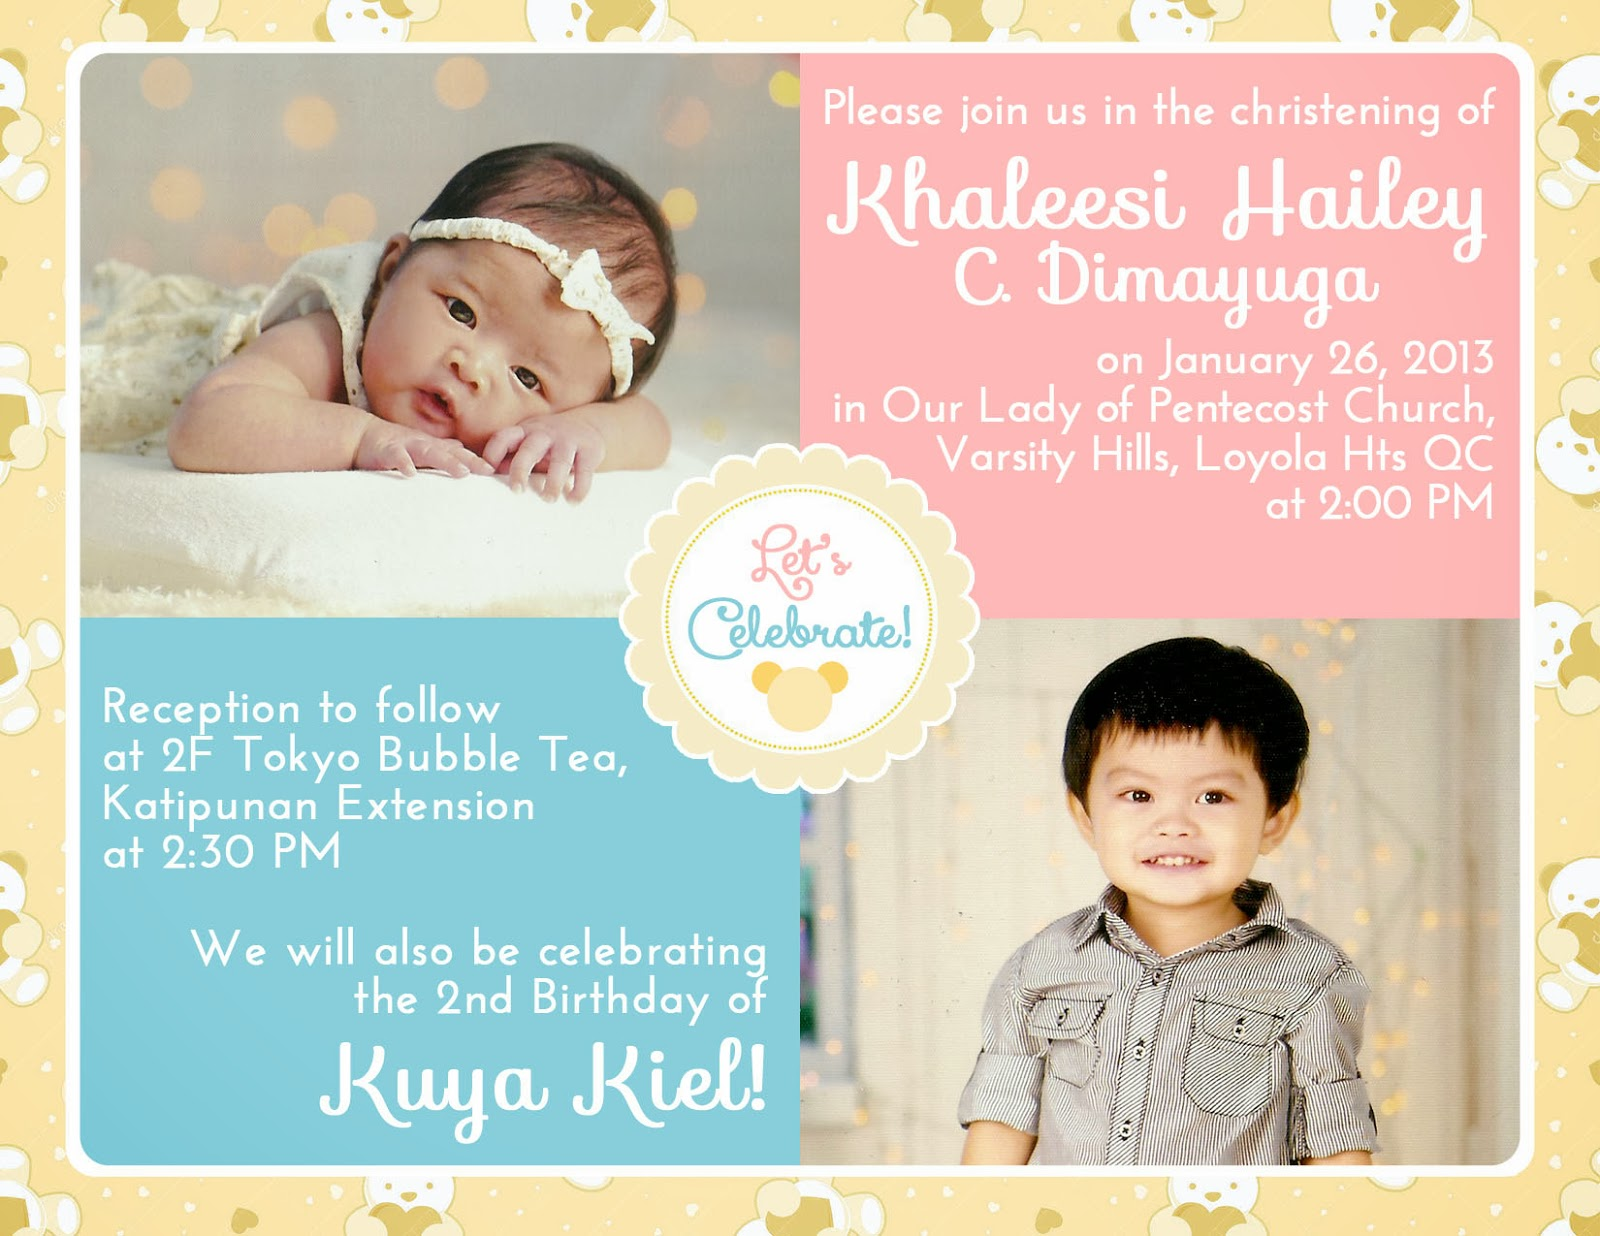 Liques antics planning a double celebration baptism and 2nd teddy bear theme invite in pastel colors pink blue yellow for the kids double celebration shameless plug do visit my portfolio stopboris